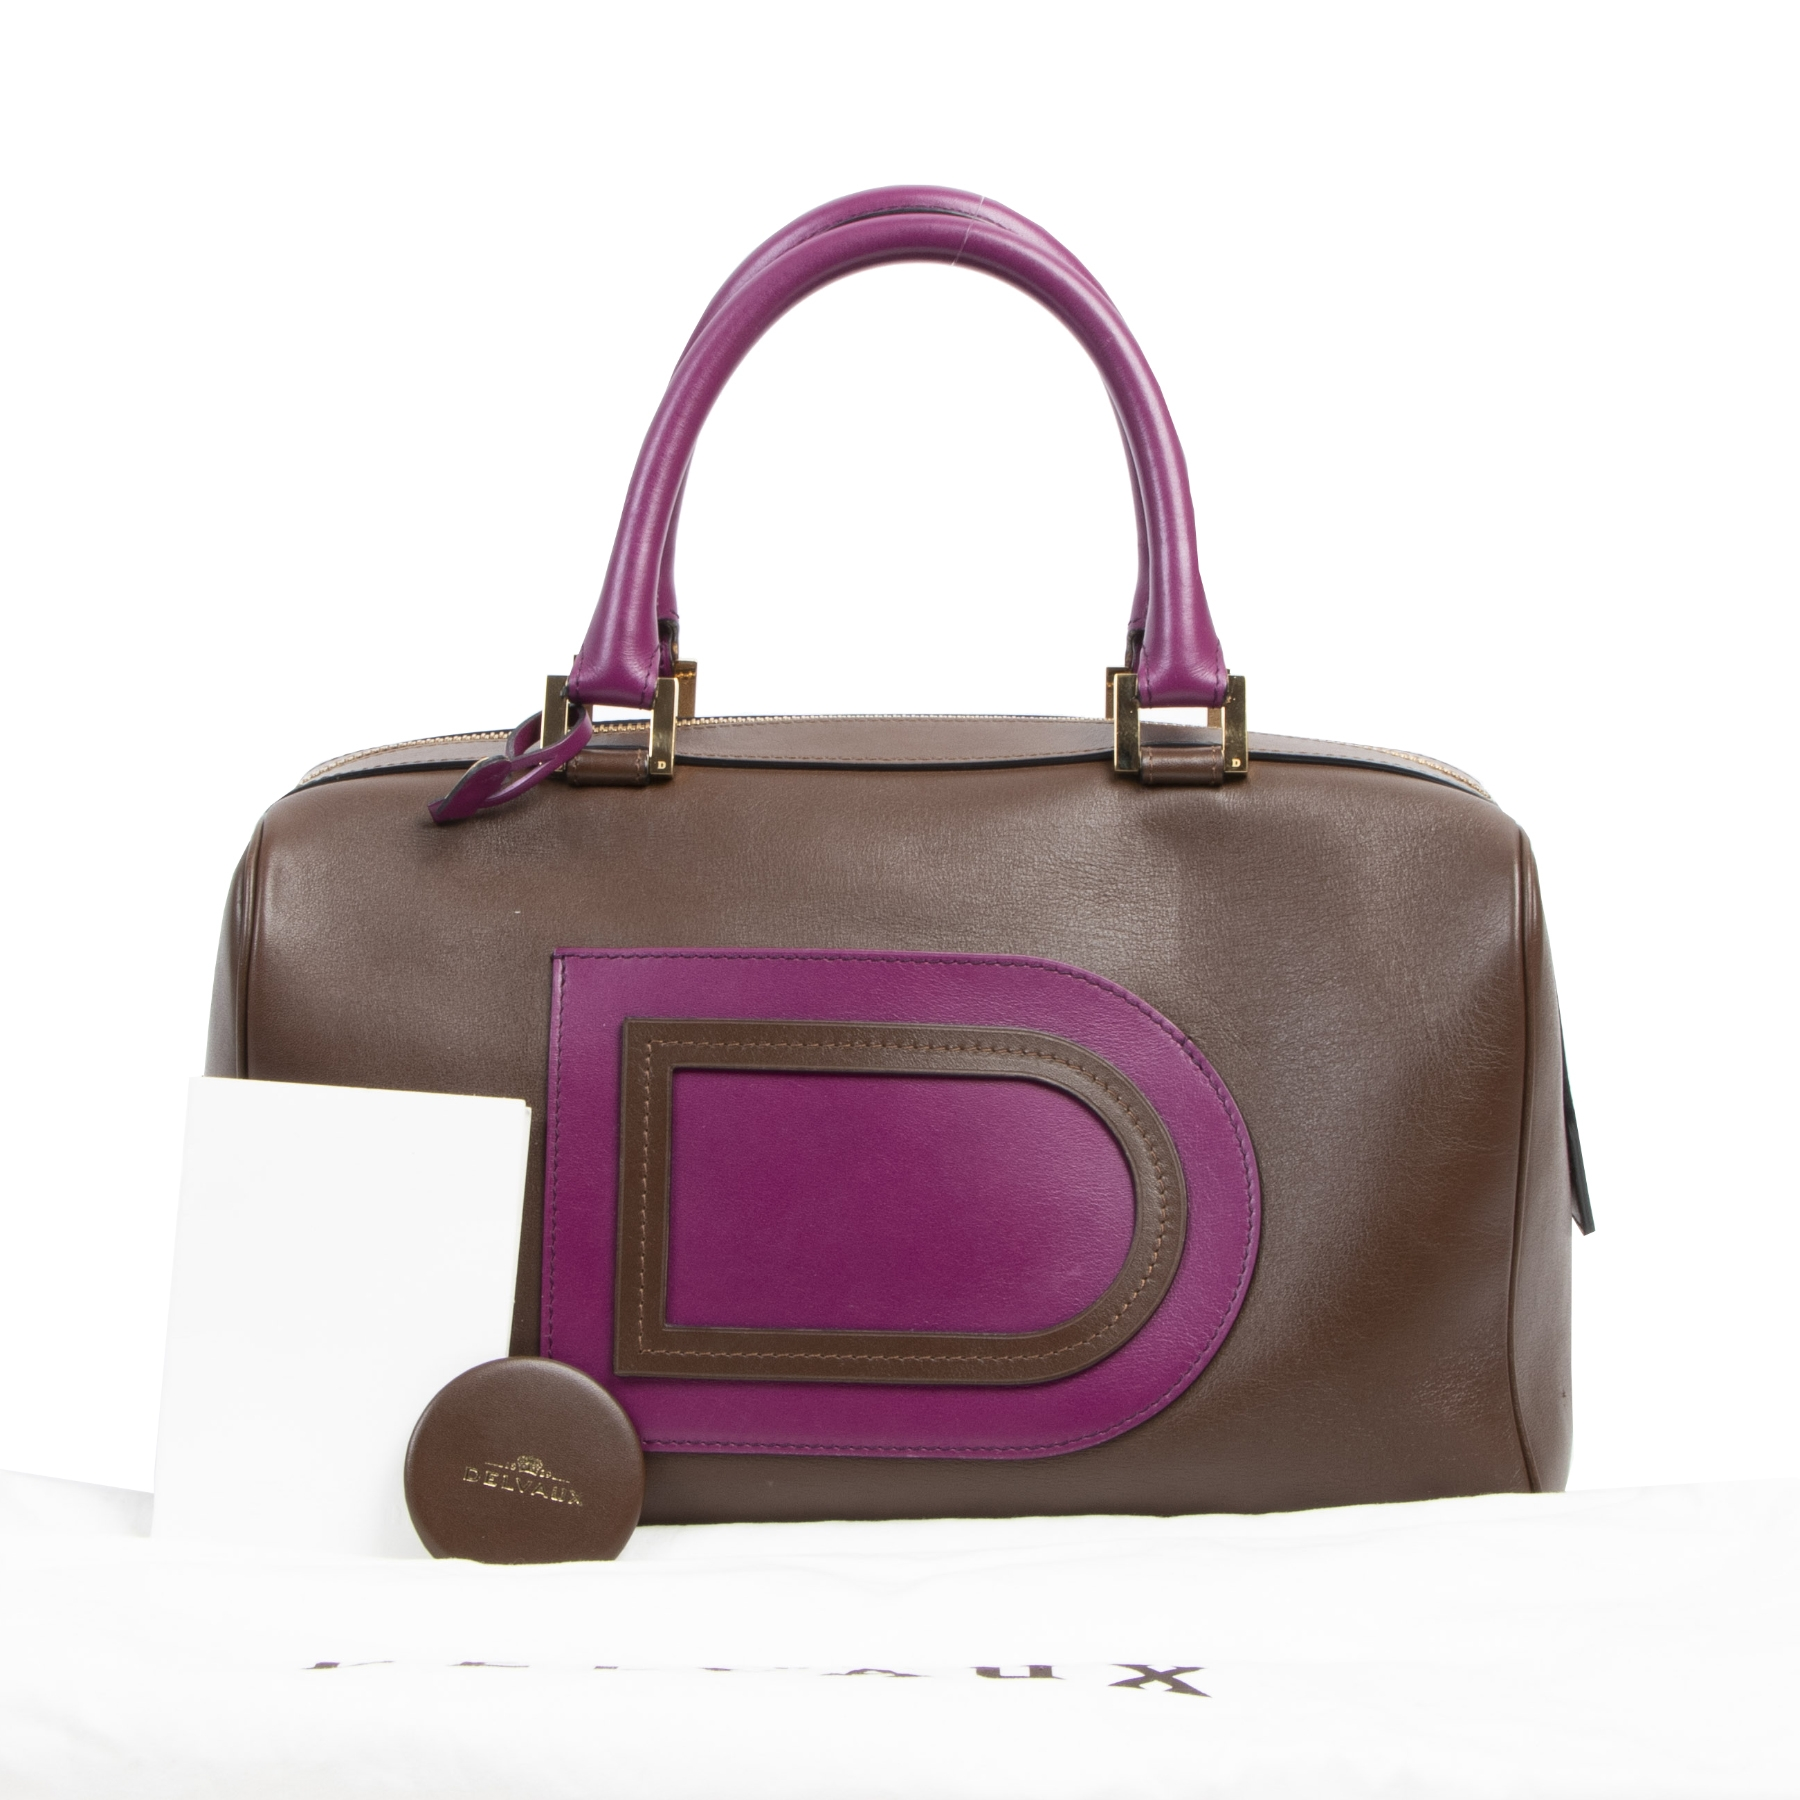 Delvaux Louise Boston Allure Brown & Purple Bag for sale online at Labellov secondhand